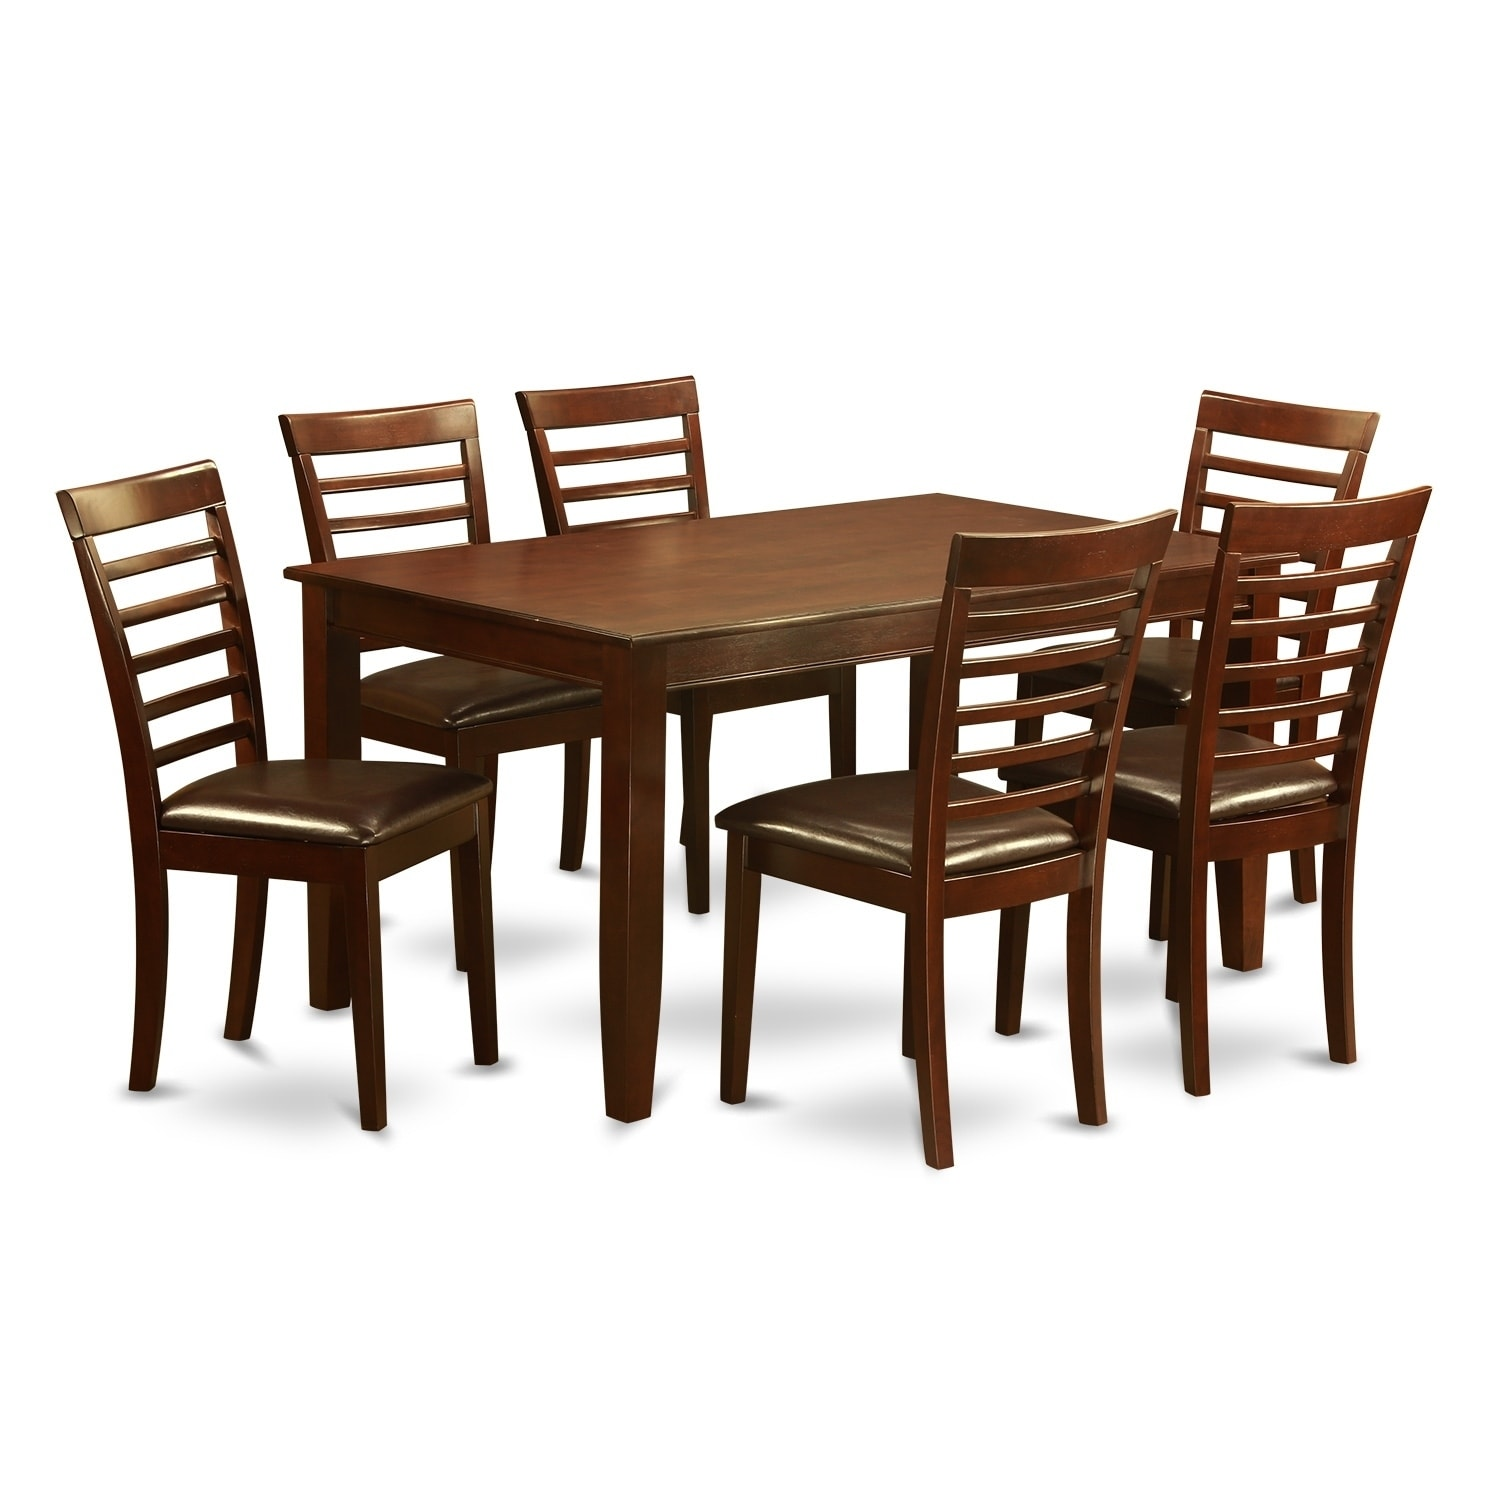 DUML7 MAH 7 PC Dining Room Set Dining Table With 6 Matching Chairs   Free  Shipping Today   Overstock   23885020